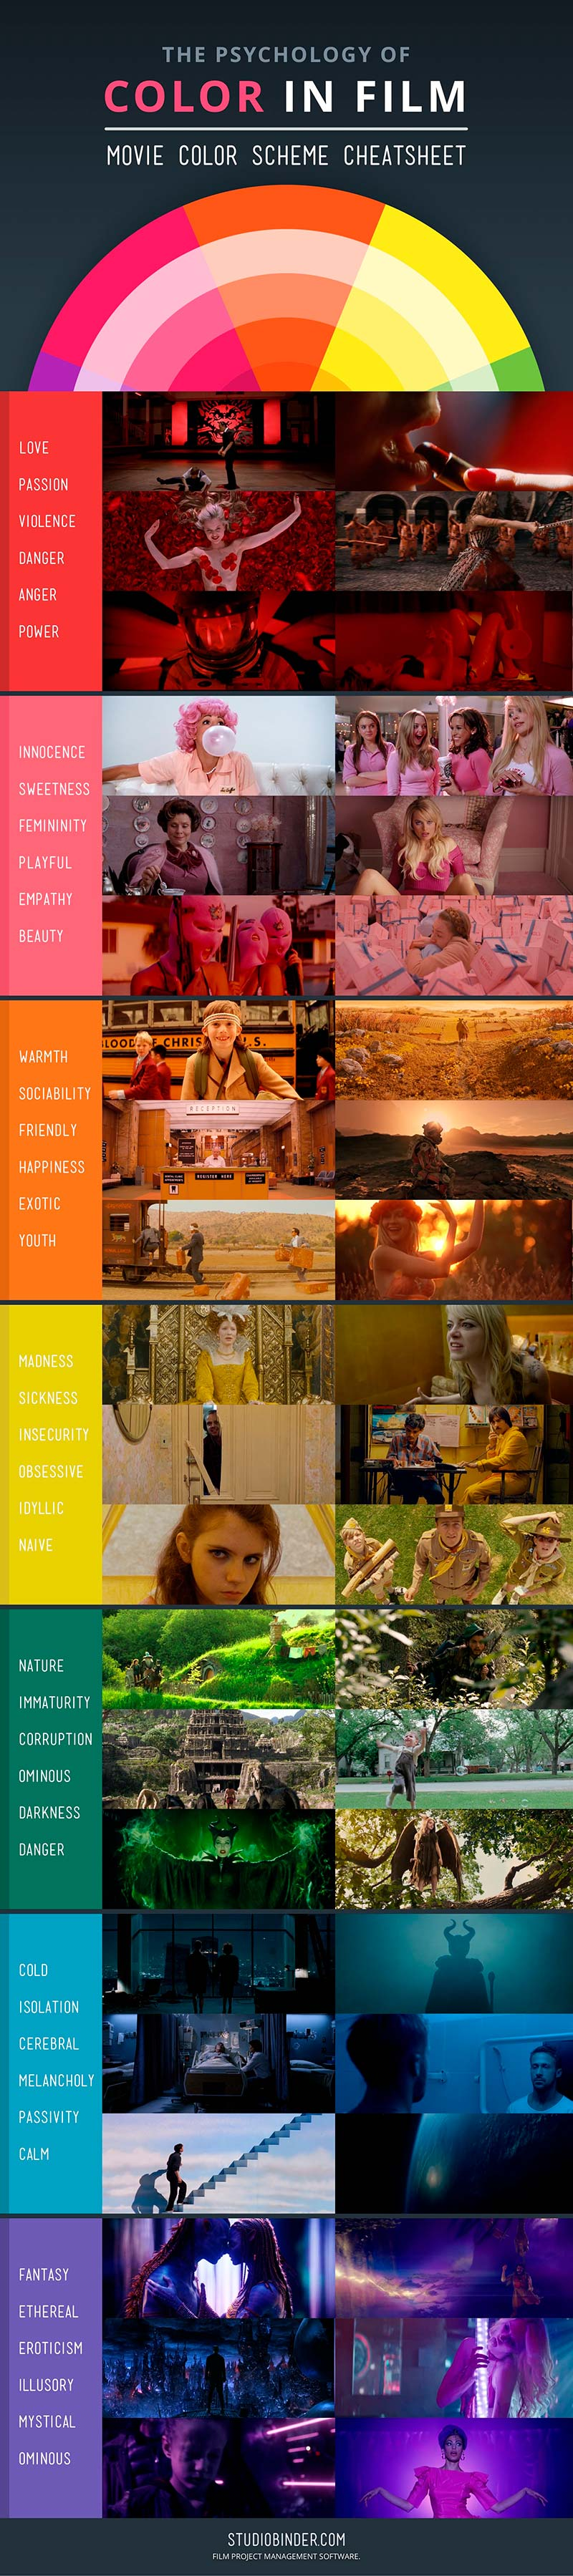 The Psychology of Color in Film #infographic